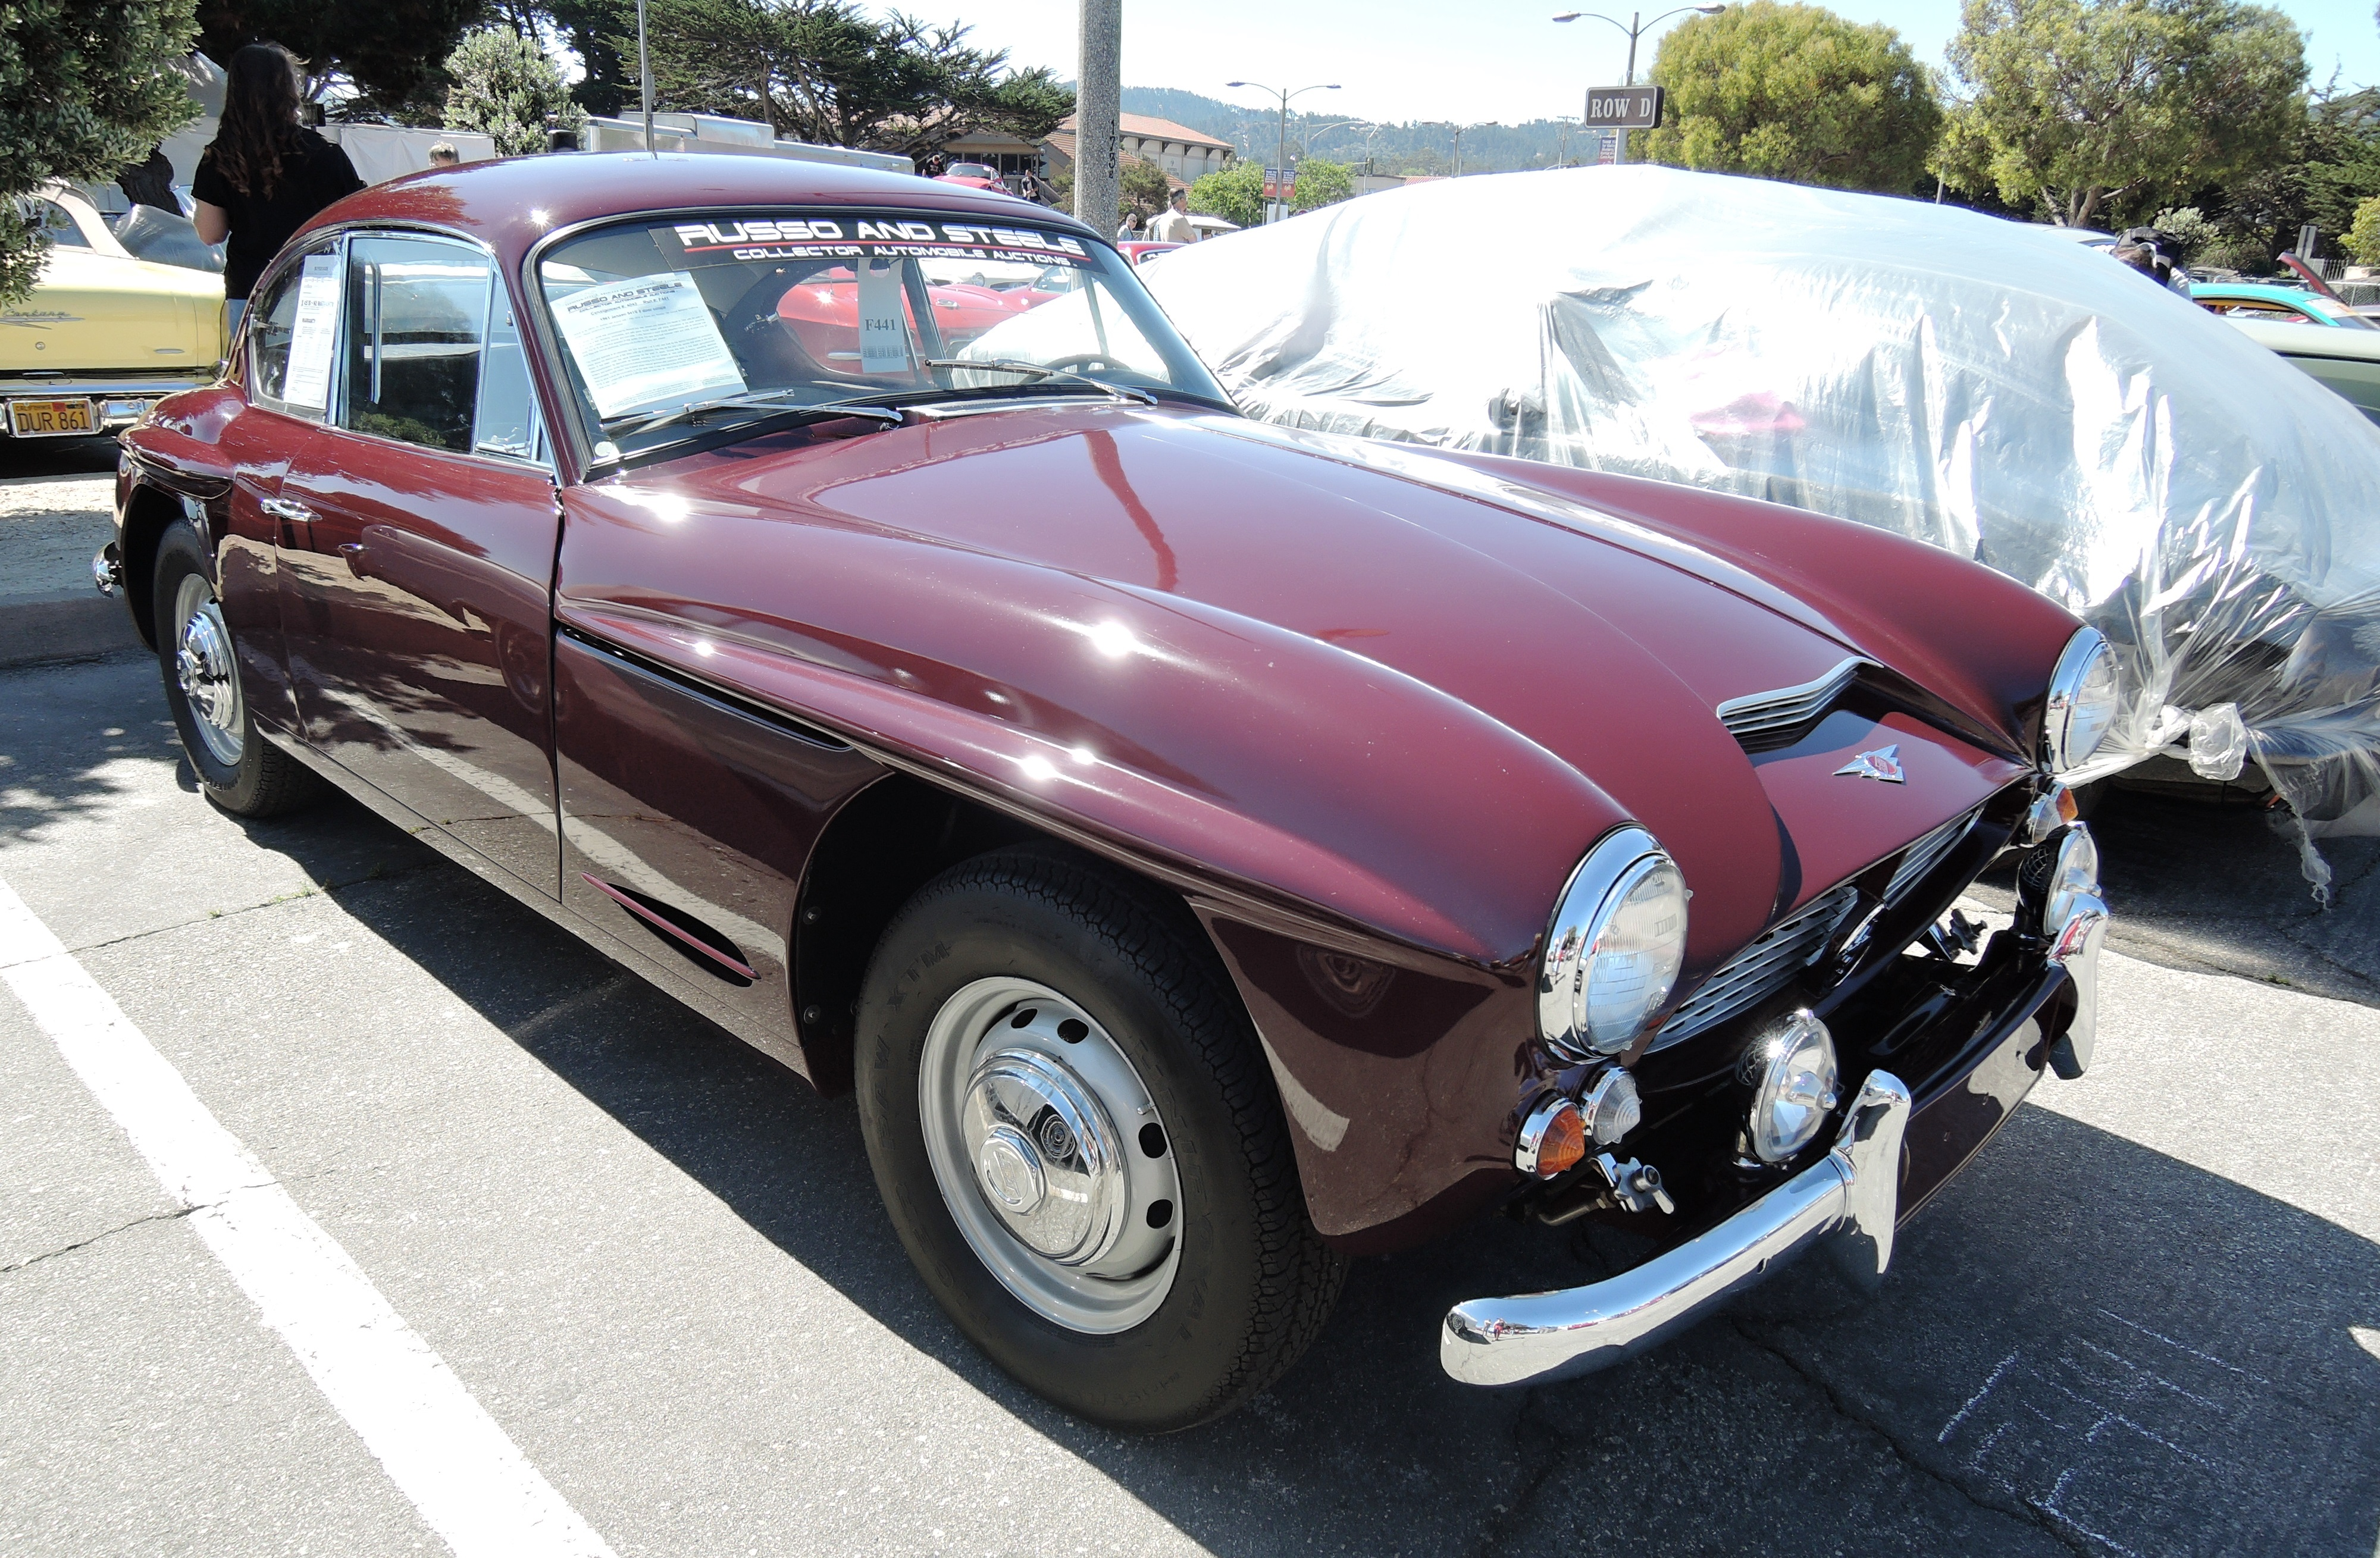 maroon 1961 Jensen 541S 2-door Coupe at Russo & Steele - classic car auctions